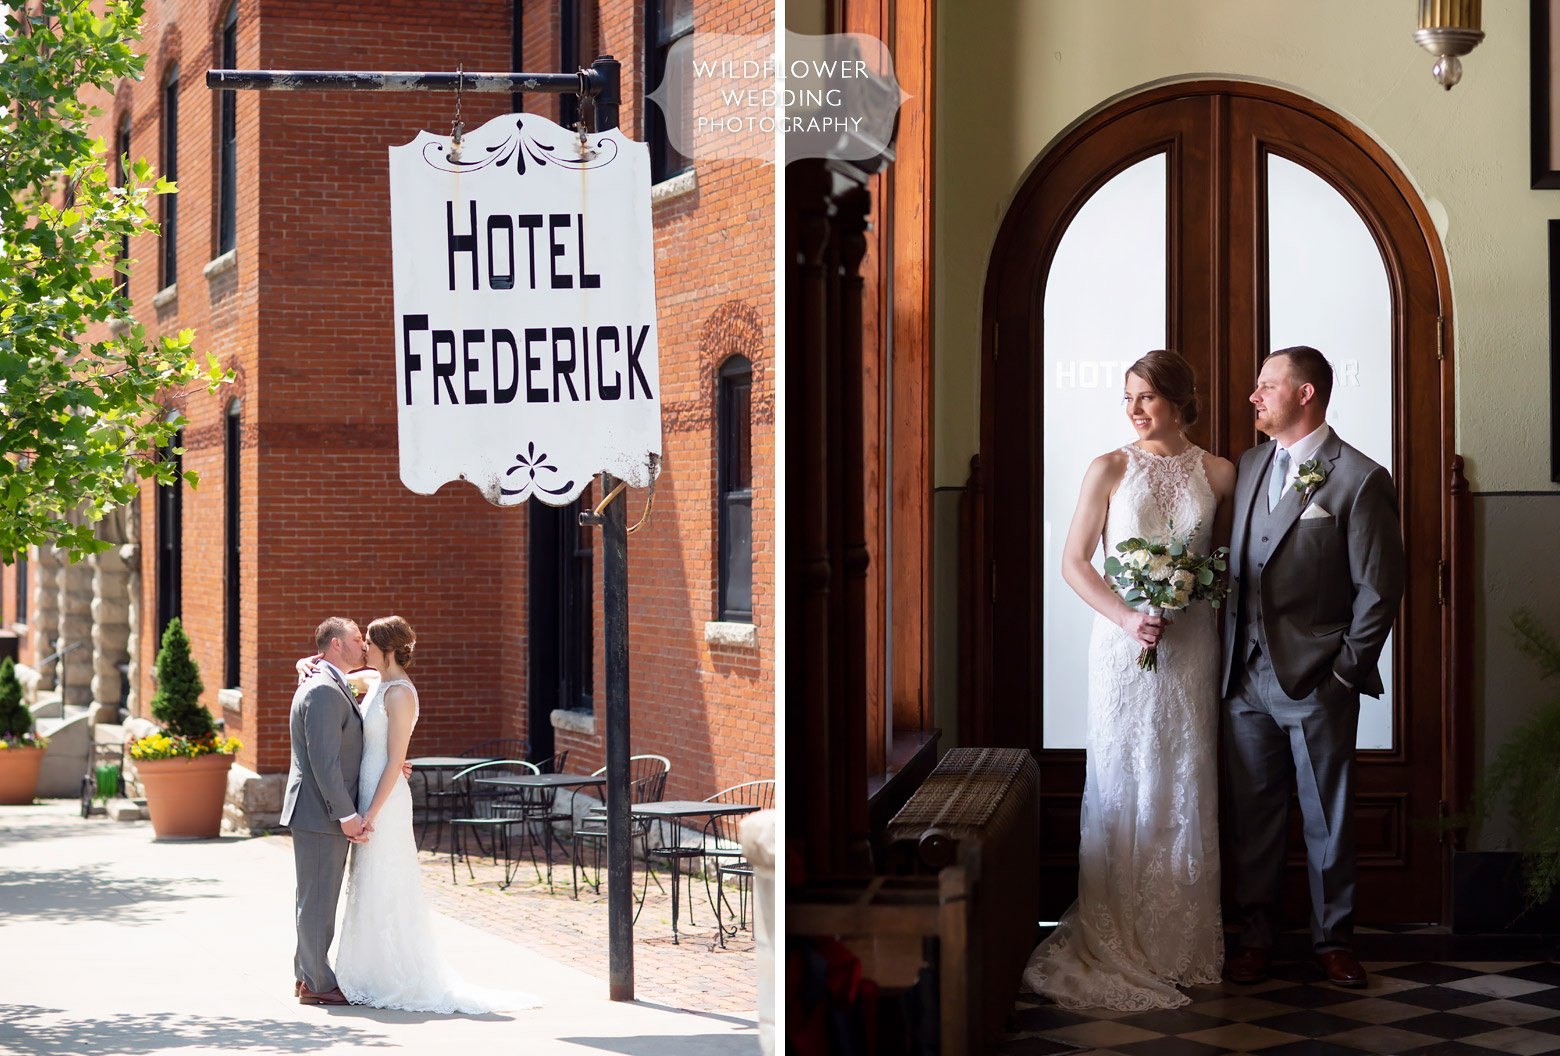 Bride and groom stand under Hotel Frederick sign in downtown Boonville.